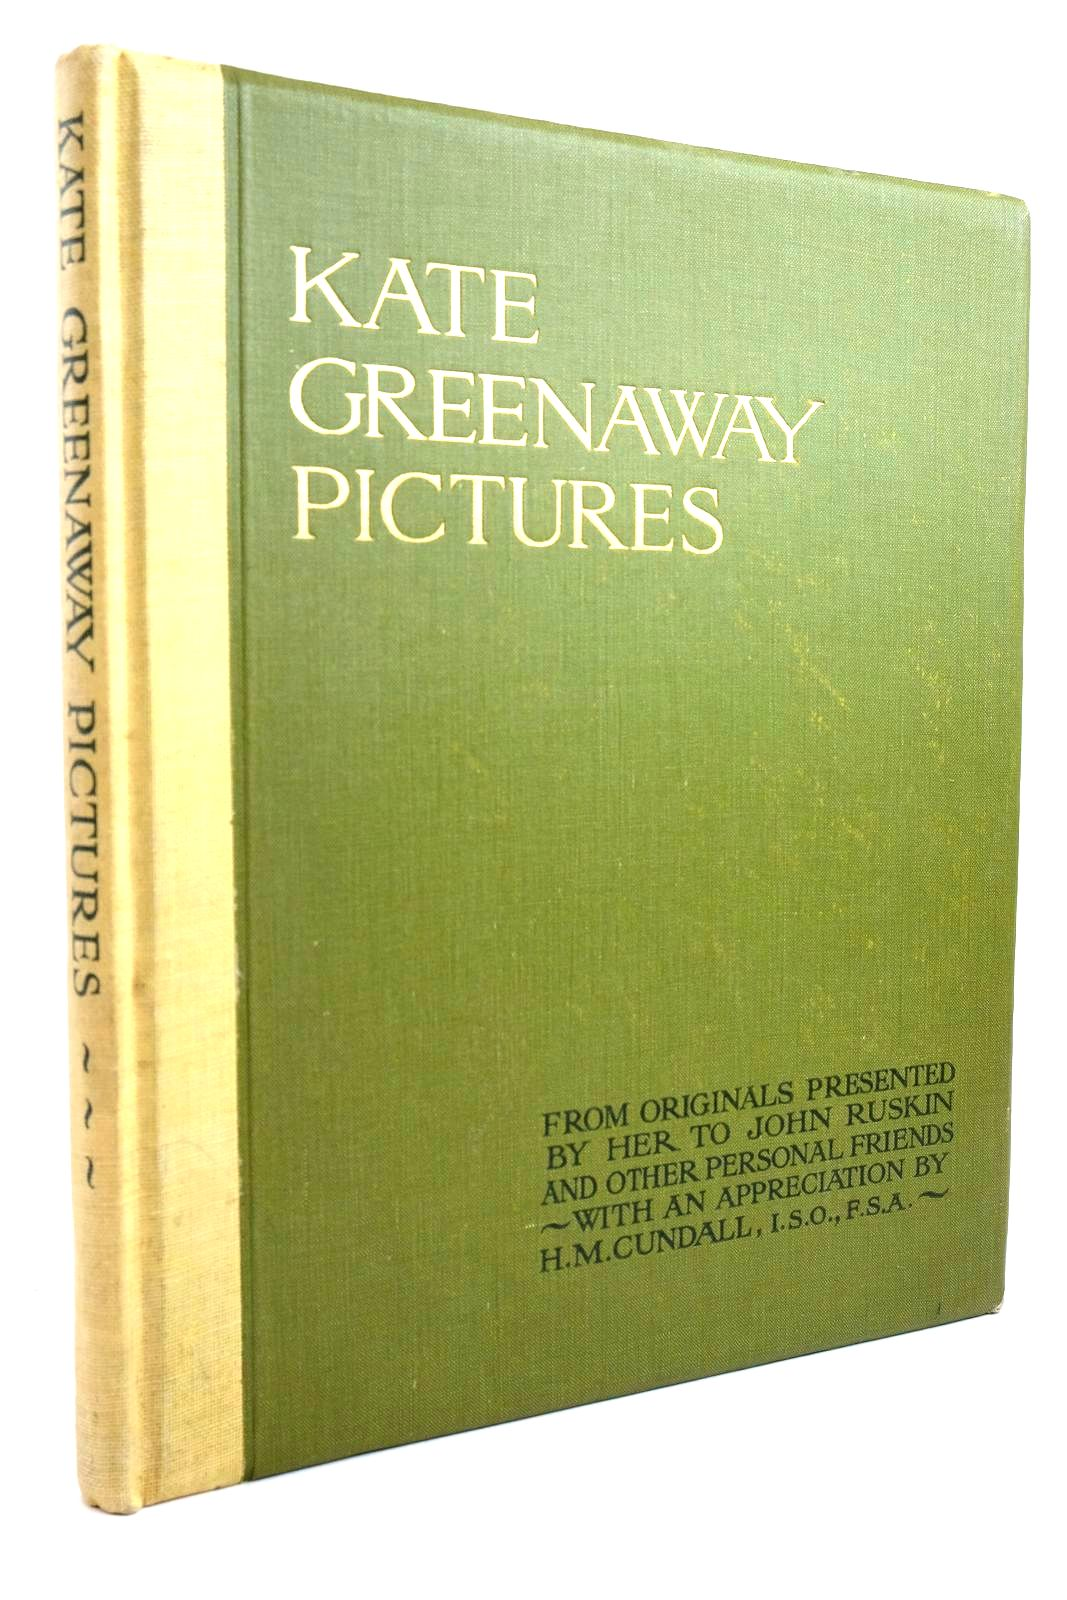 Photo of KATE GREENAWAY PICTURES written by Cundall, H.M. illustrated by Greenaway, Kate published by Frederick Warne & Co Ltd. (STOCK CODE: 1320666)  for sale by Stella & Rose's Books